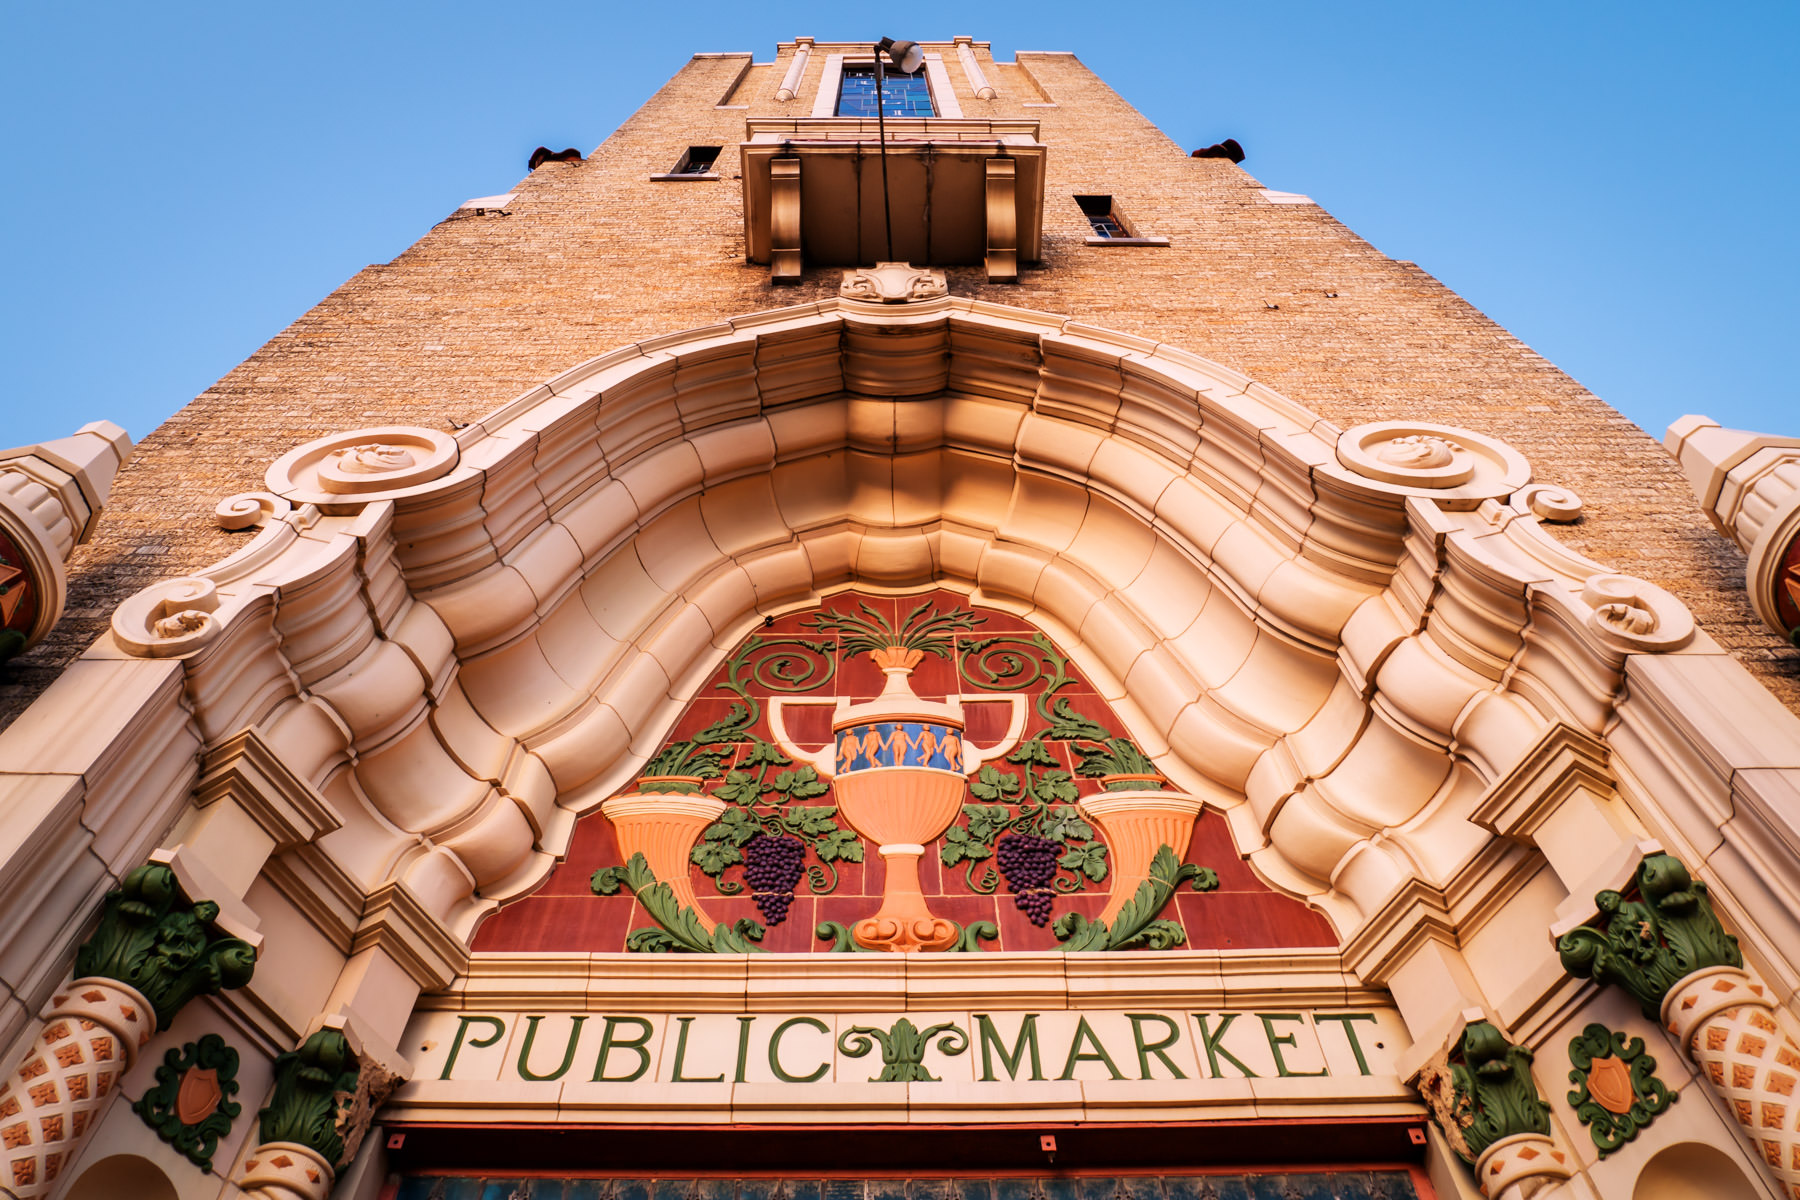 The ornate and colorful facade of the disused Public Market Building in Fort Worth, Texas.